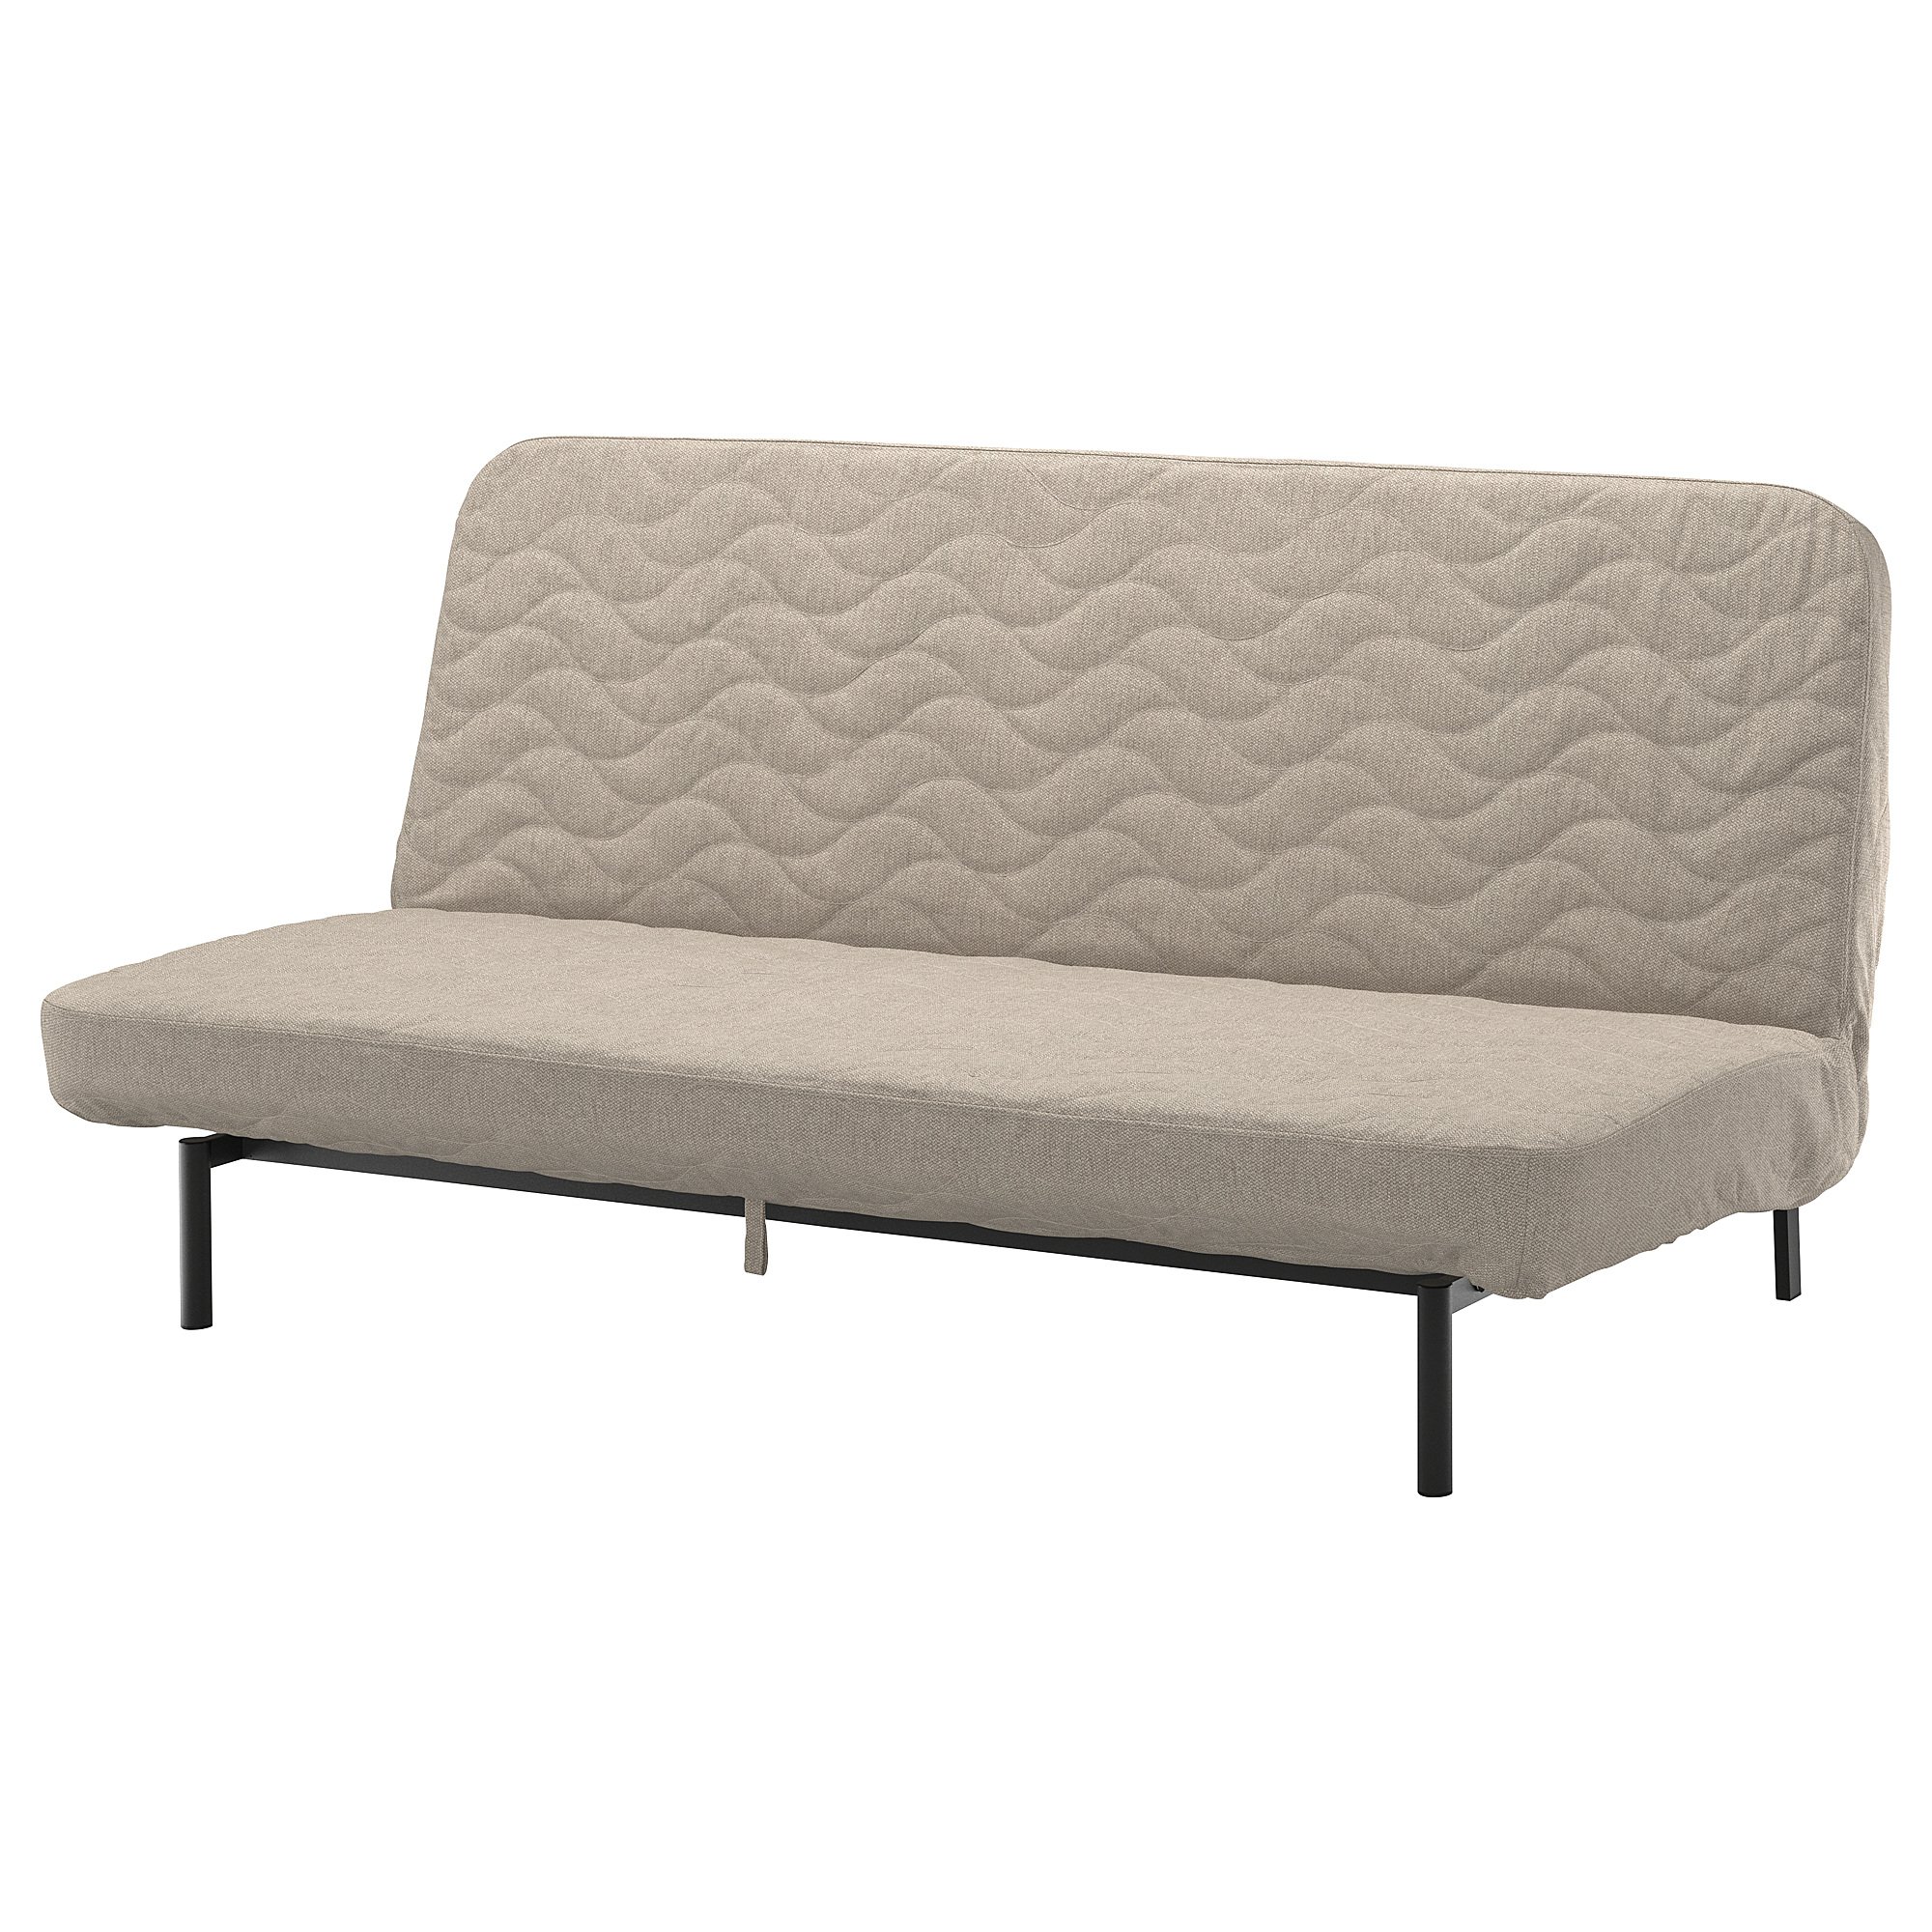 Nyhamn Cover For 3 Seat Sofa Bed Hyllie Beige Ikea Hong Kong And Macau